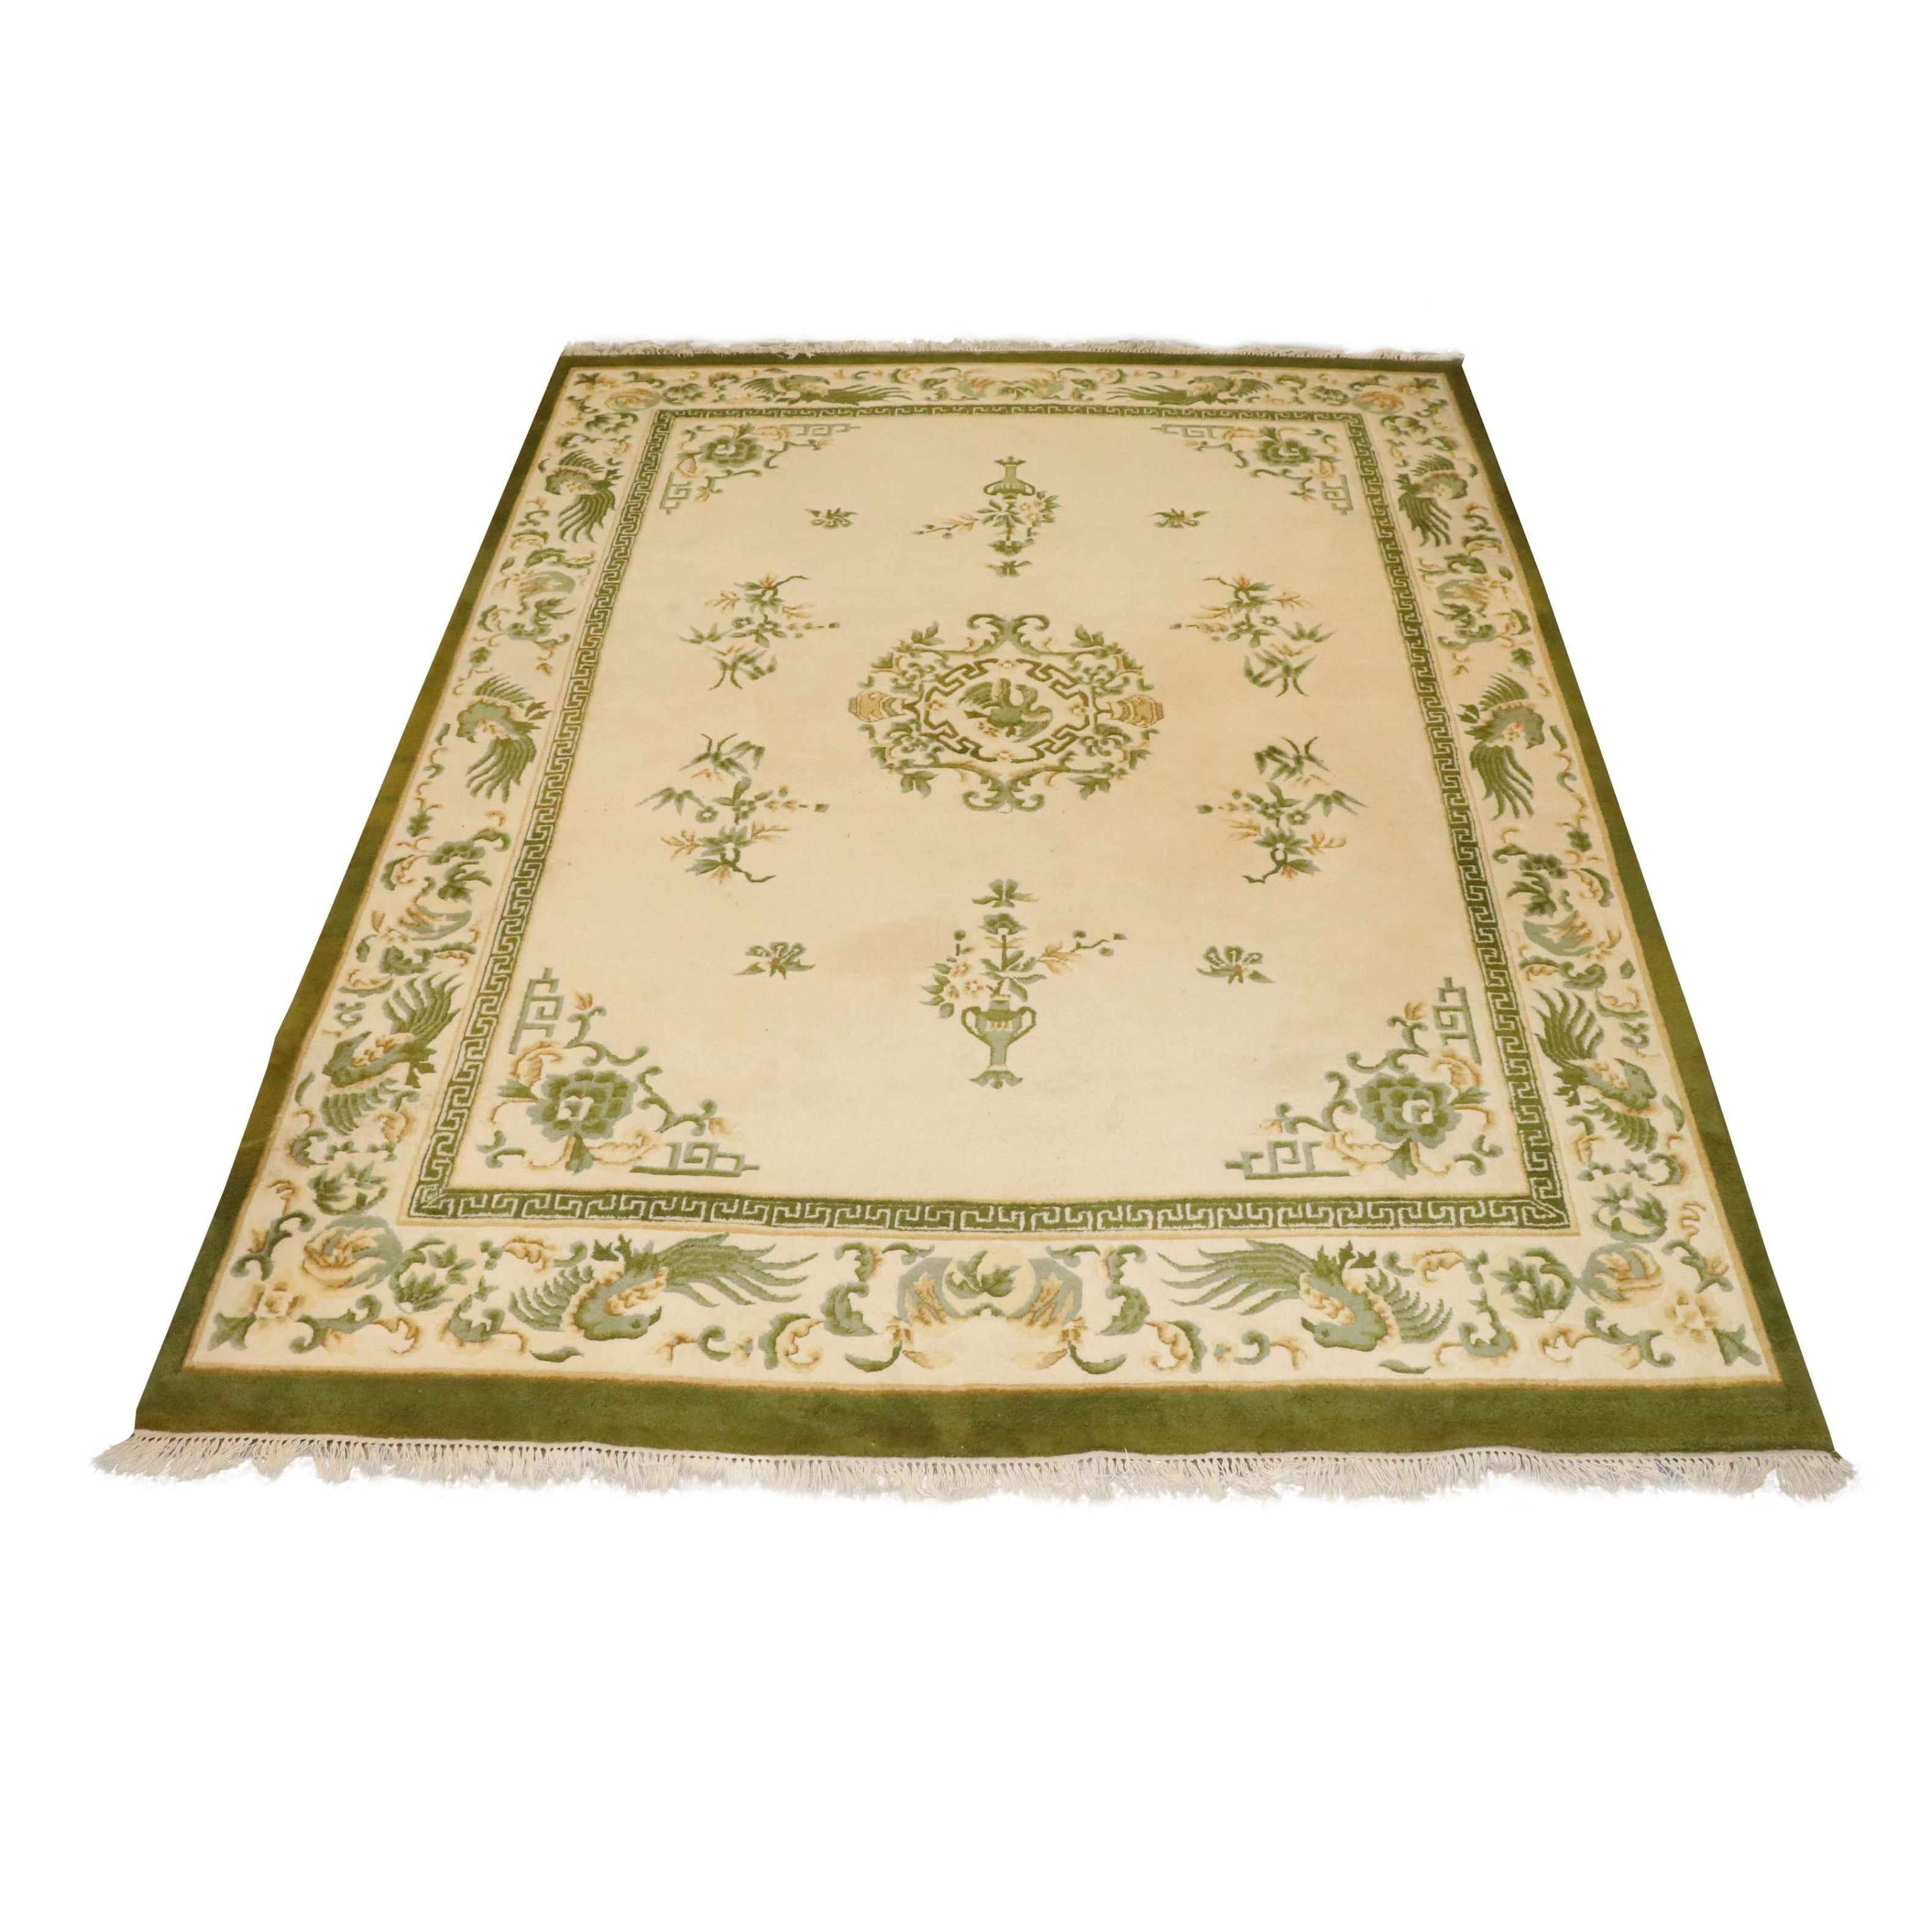 Hand-Knotted Ethan Allen Indian Carved Wool Room Sized Rug